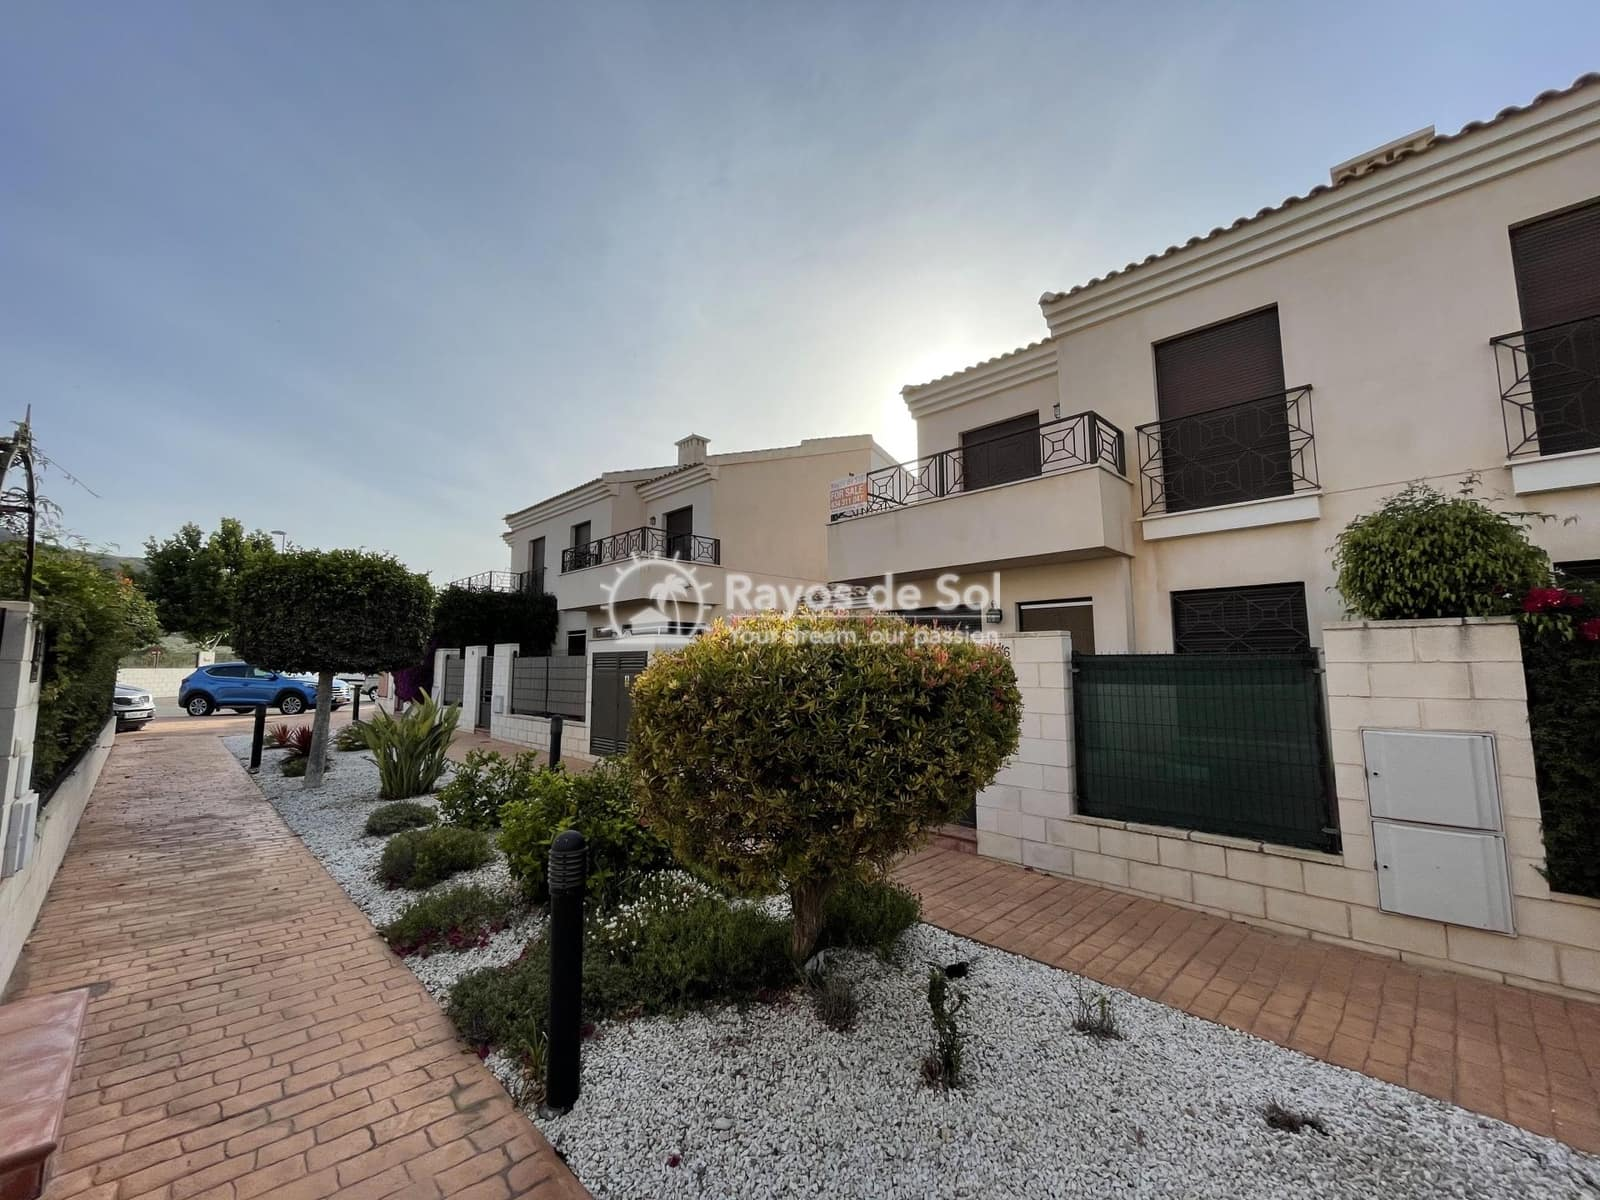 3 bedroom Townhouse for sale in San Cayetano with pool - € 115,000 (Ref: 6099183)